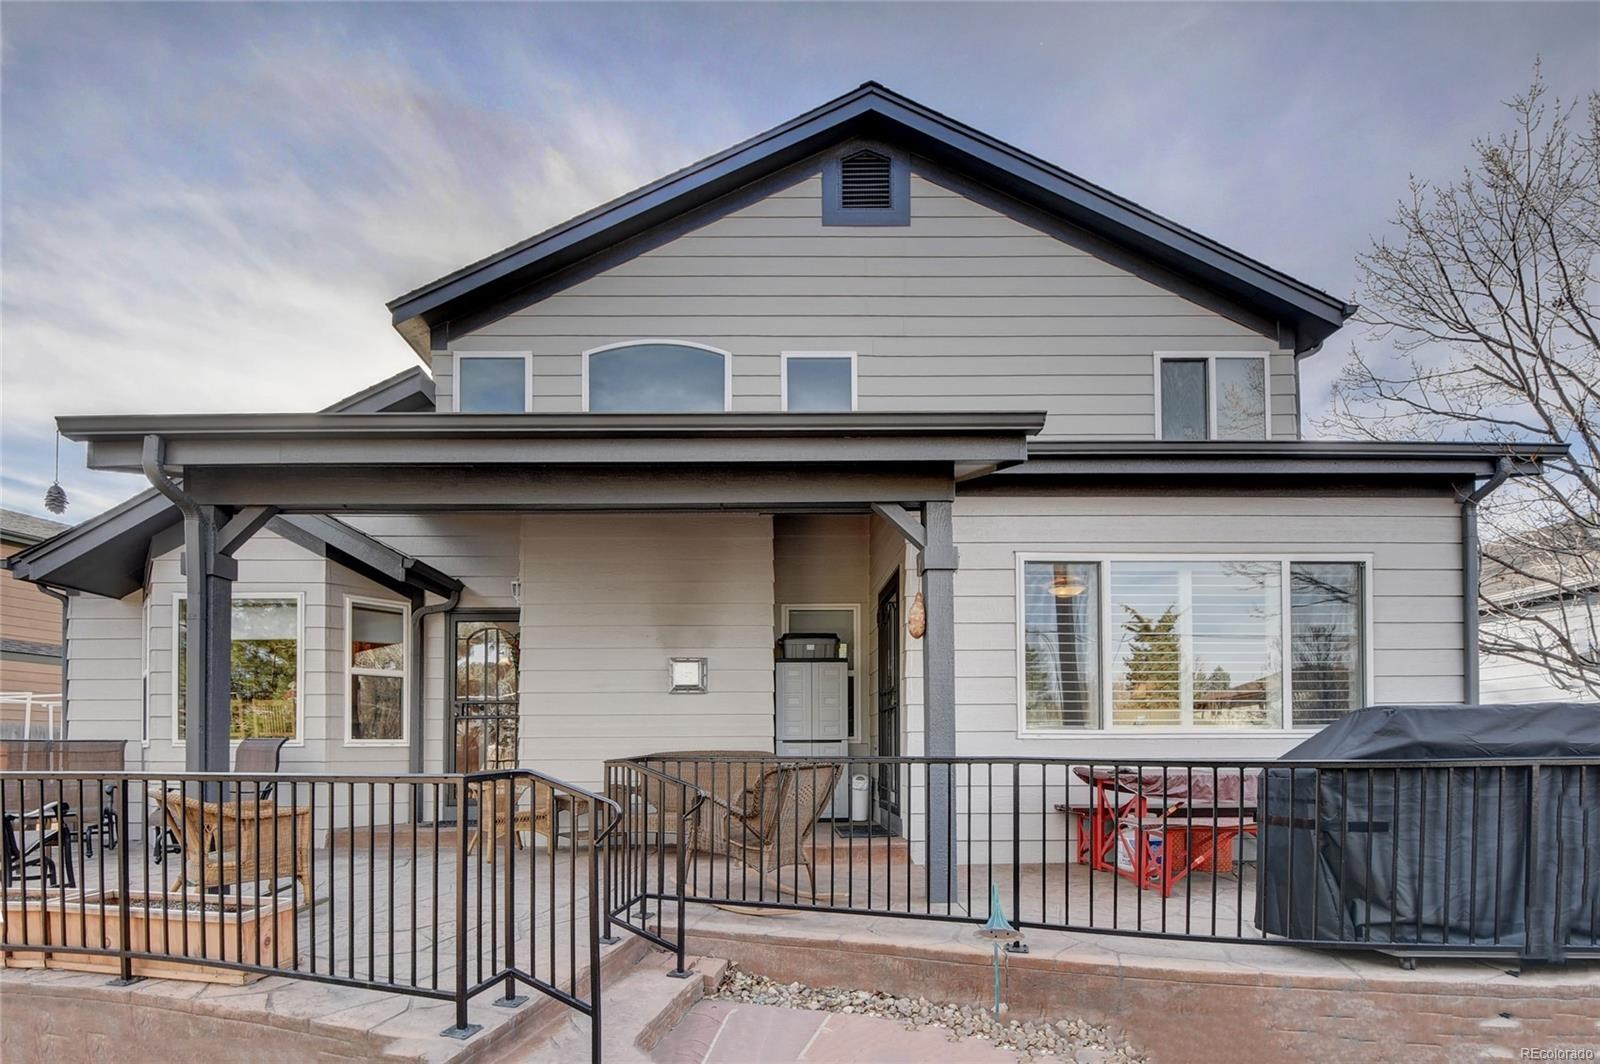 MLS# 9913436 - 32 - 5726 W 81st Place, Arvada, CO 80003